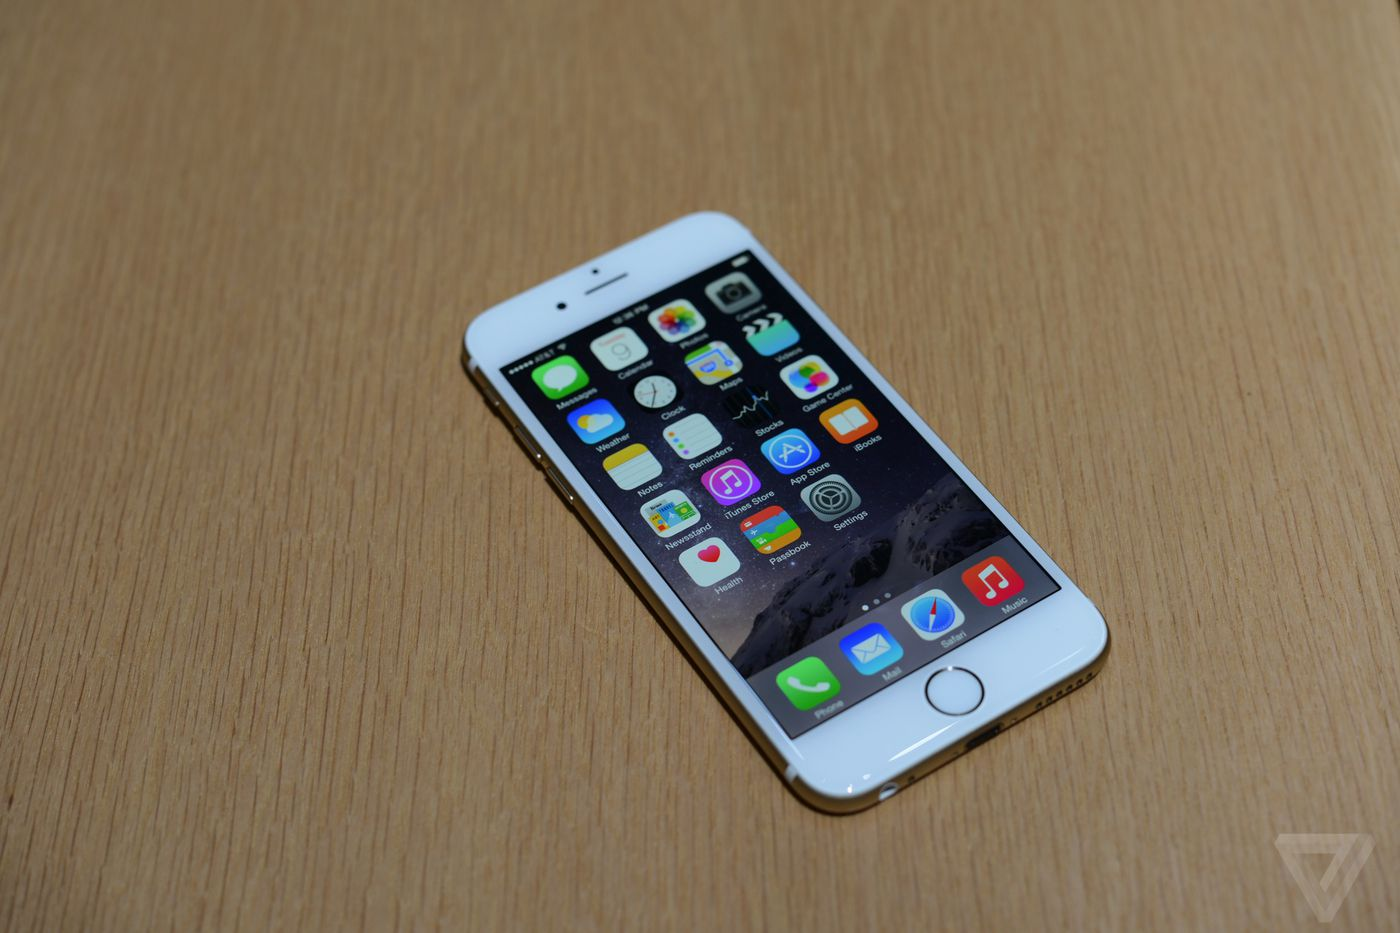 How to buy an iPhone 6 - The Verge